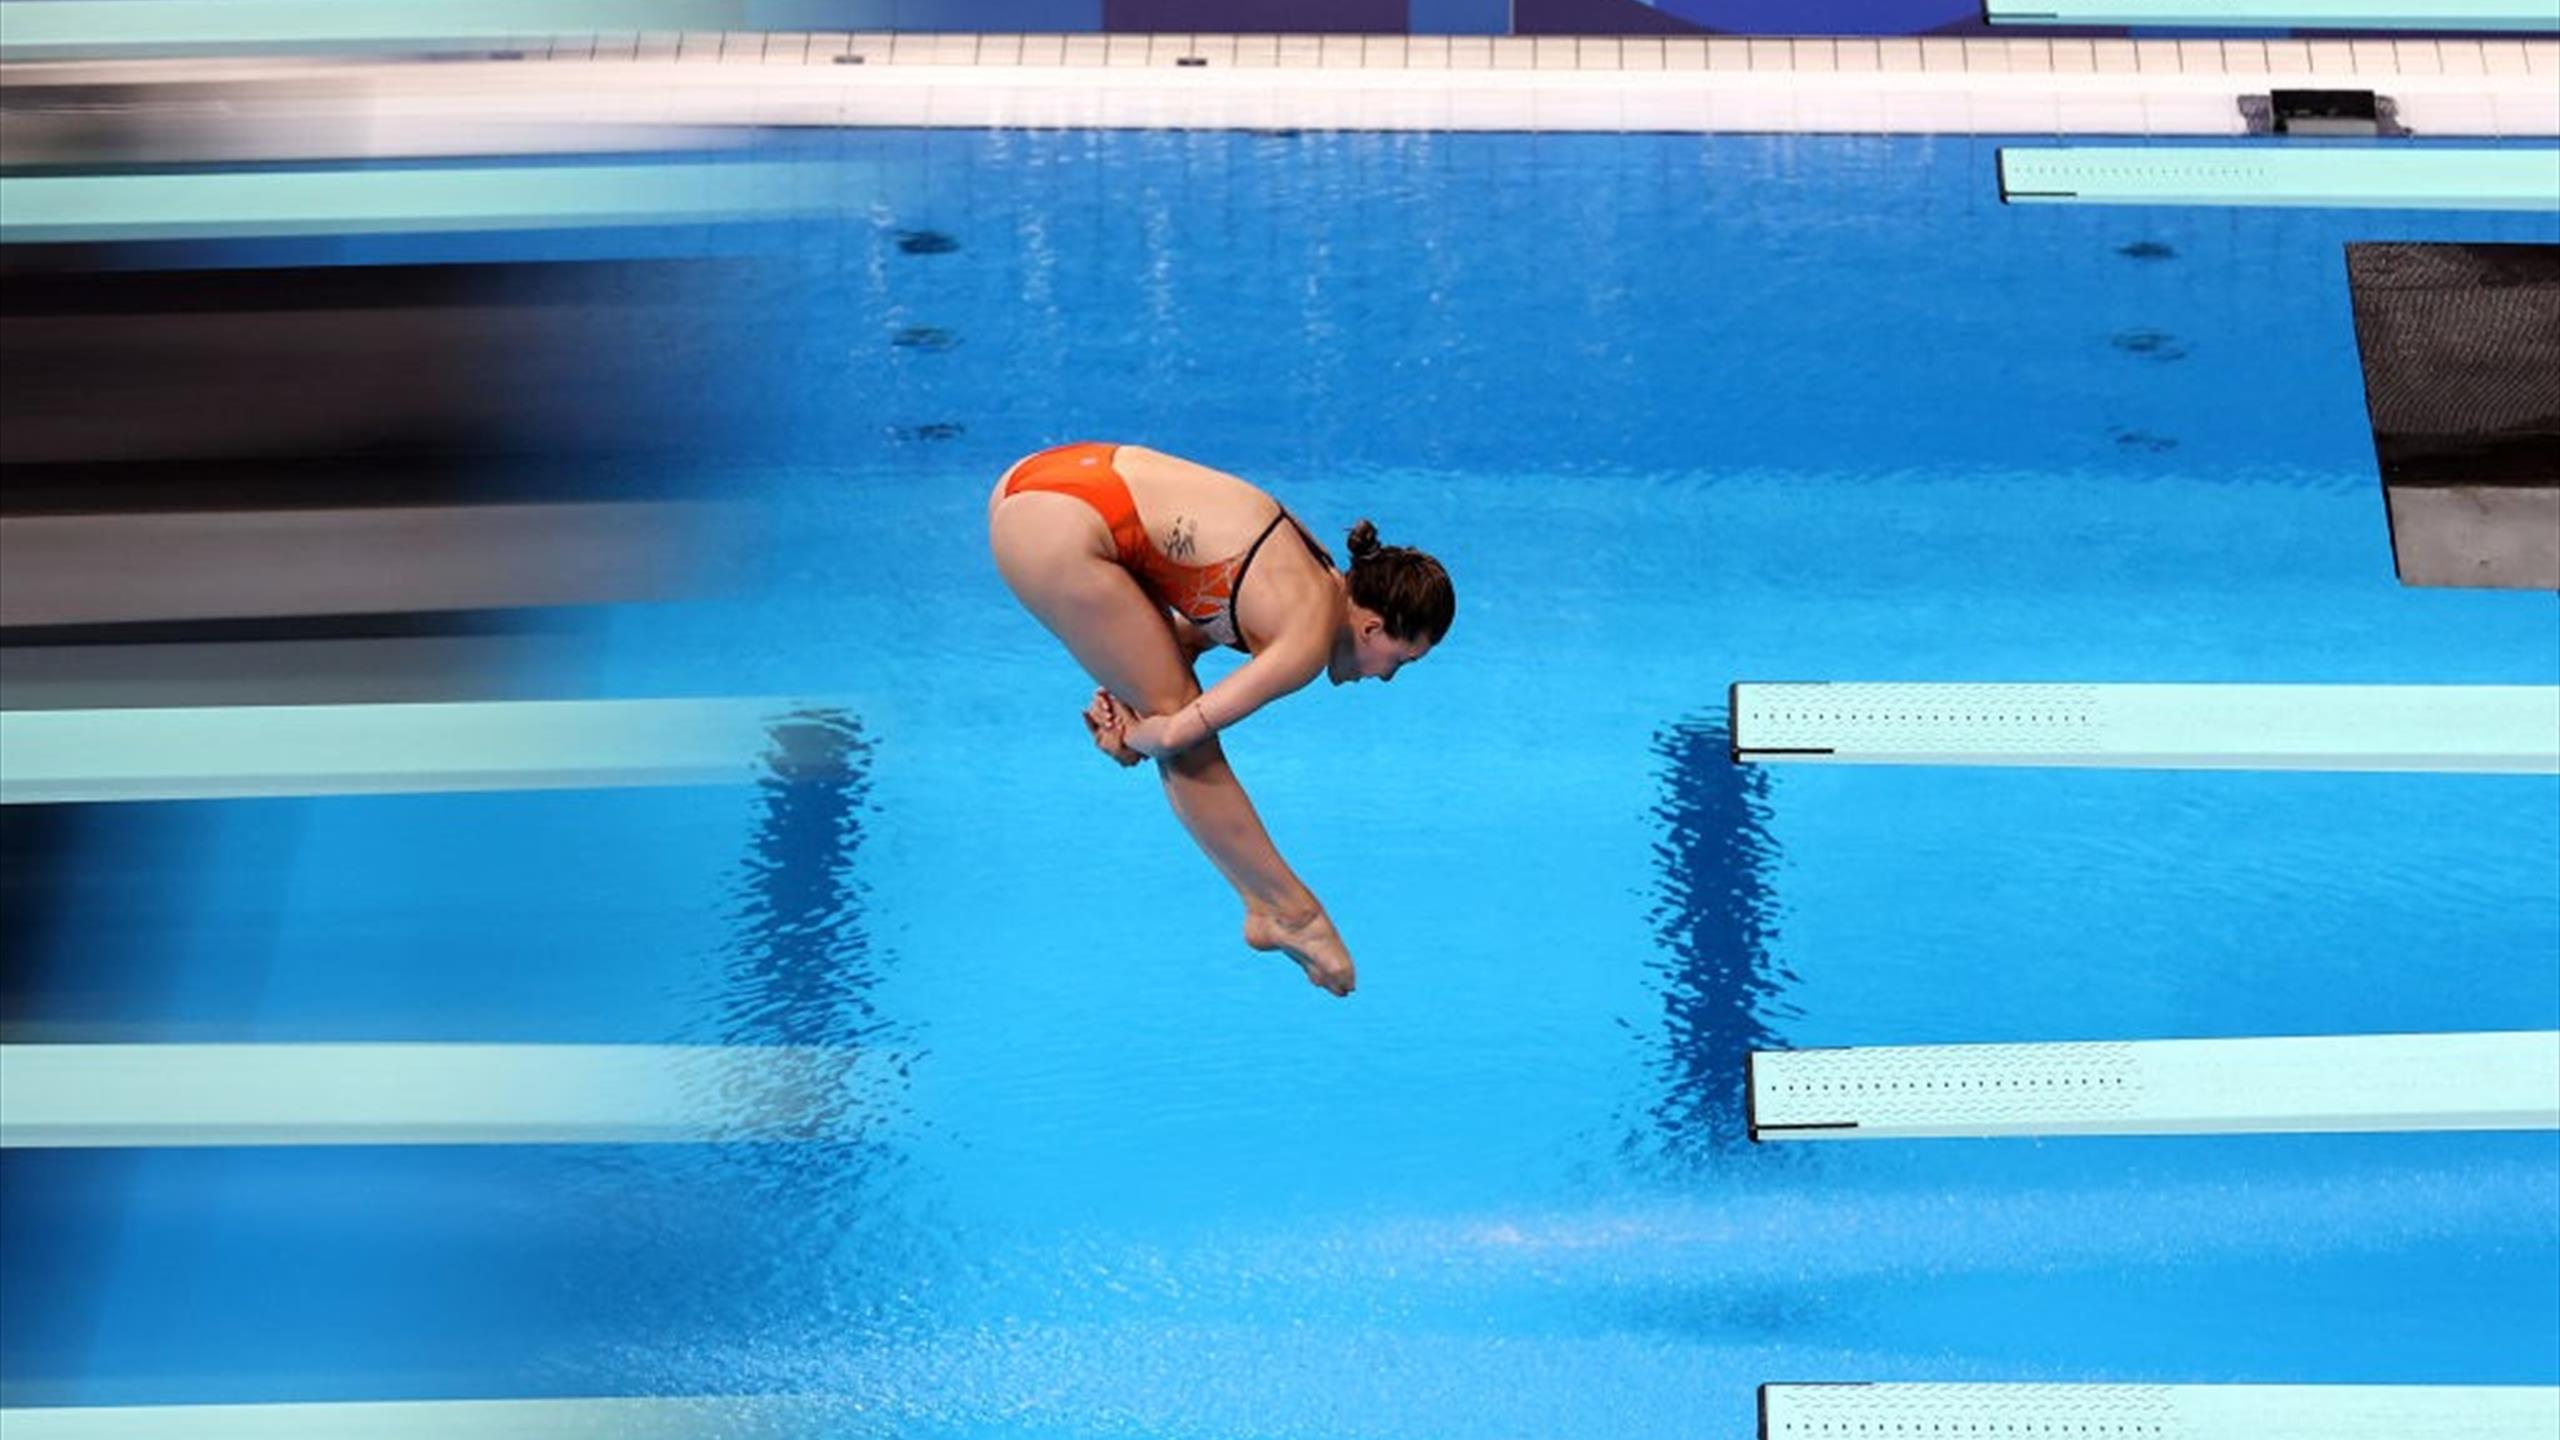 Tokyo 2020 |  Waseem 5th place for Inge Jansen in the diving final